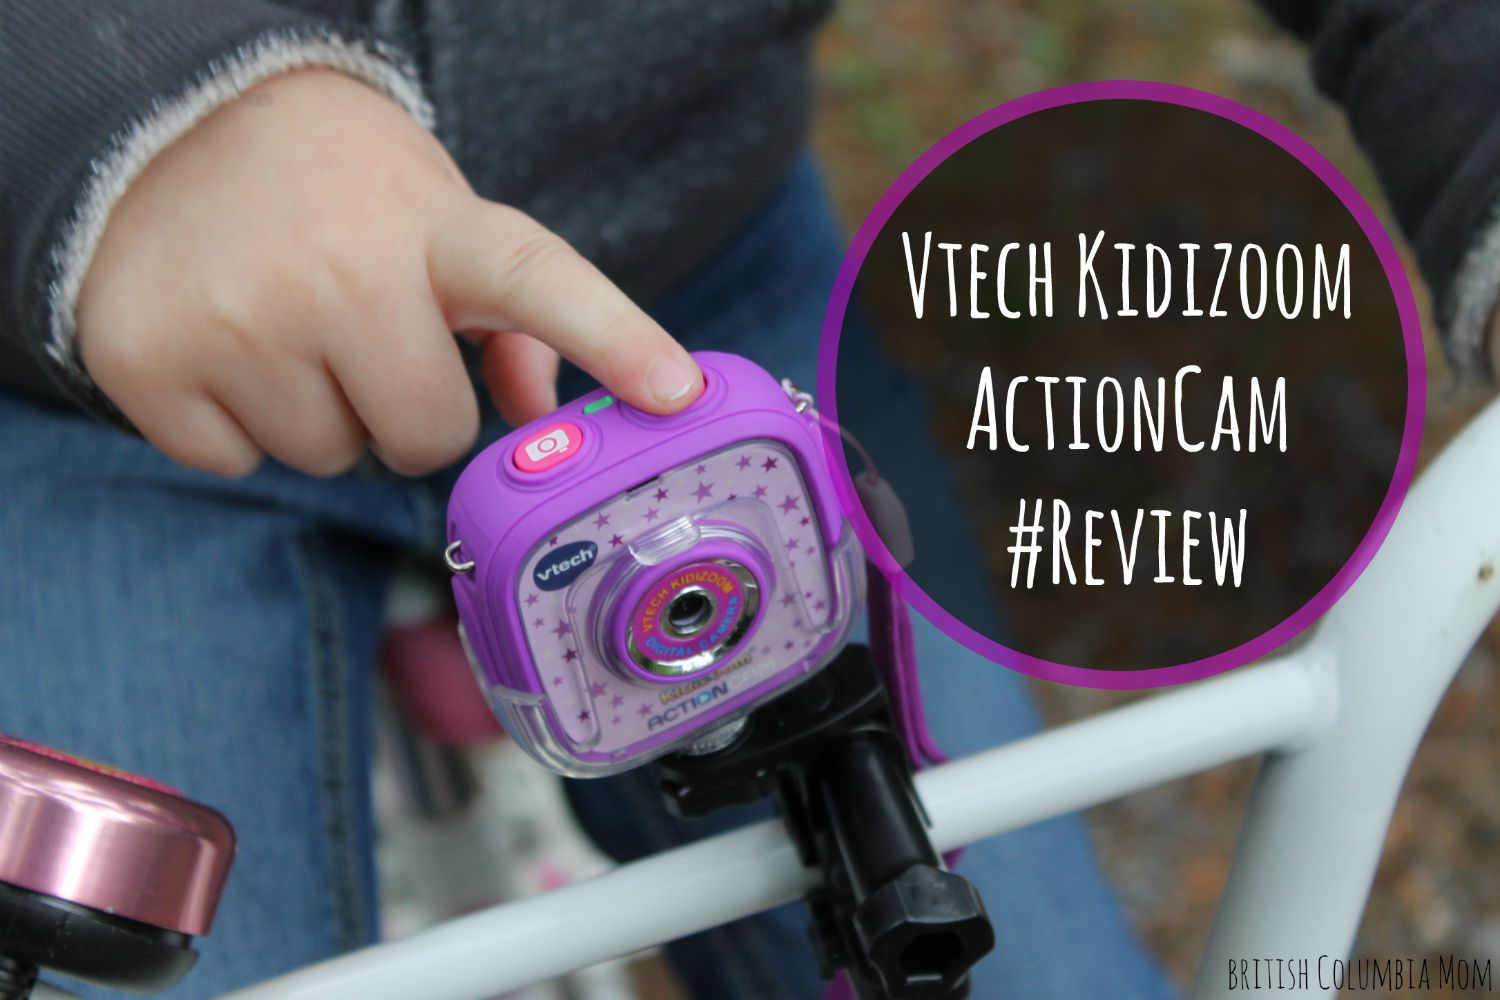 Vtech Kidizcoom Actioncam